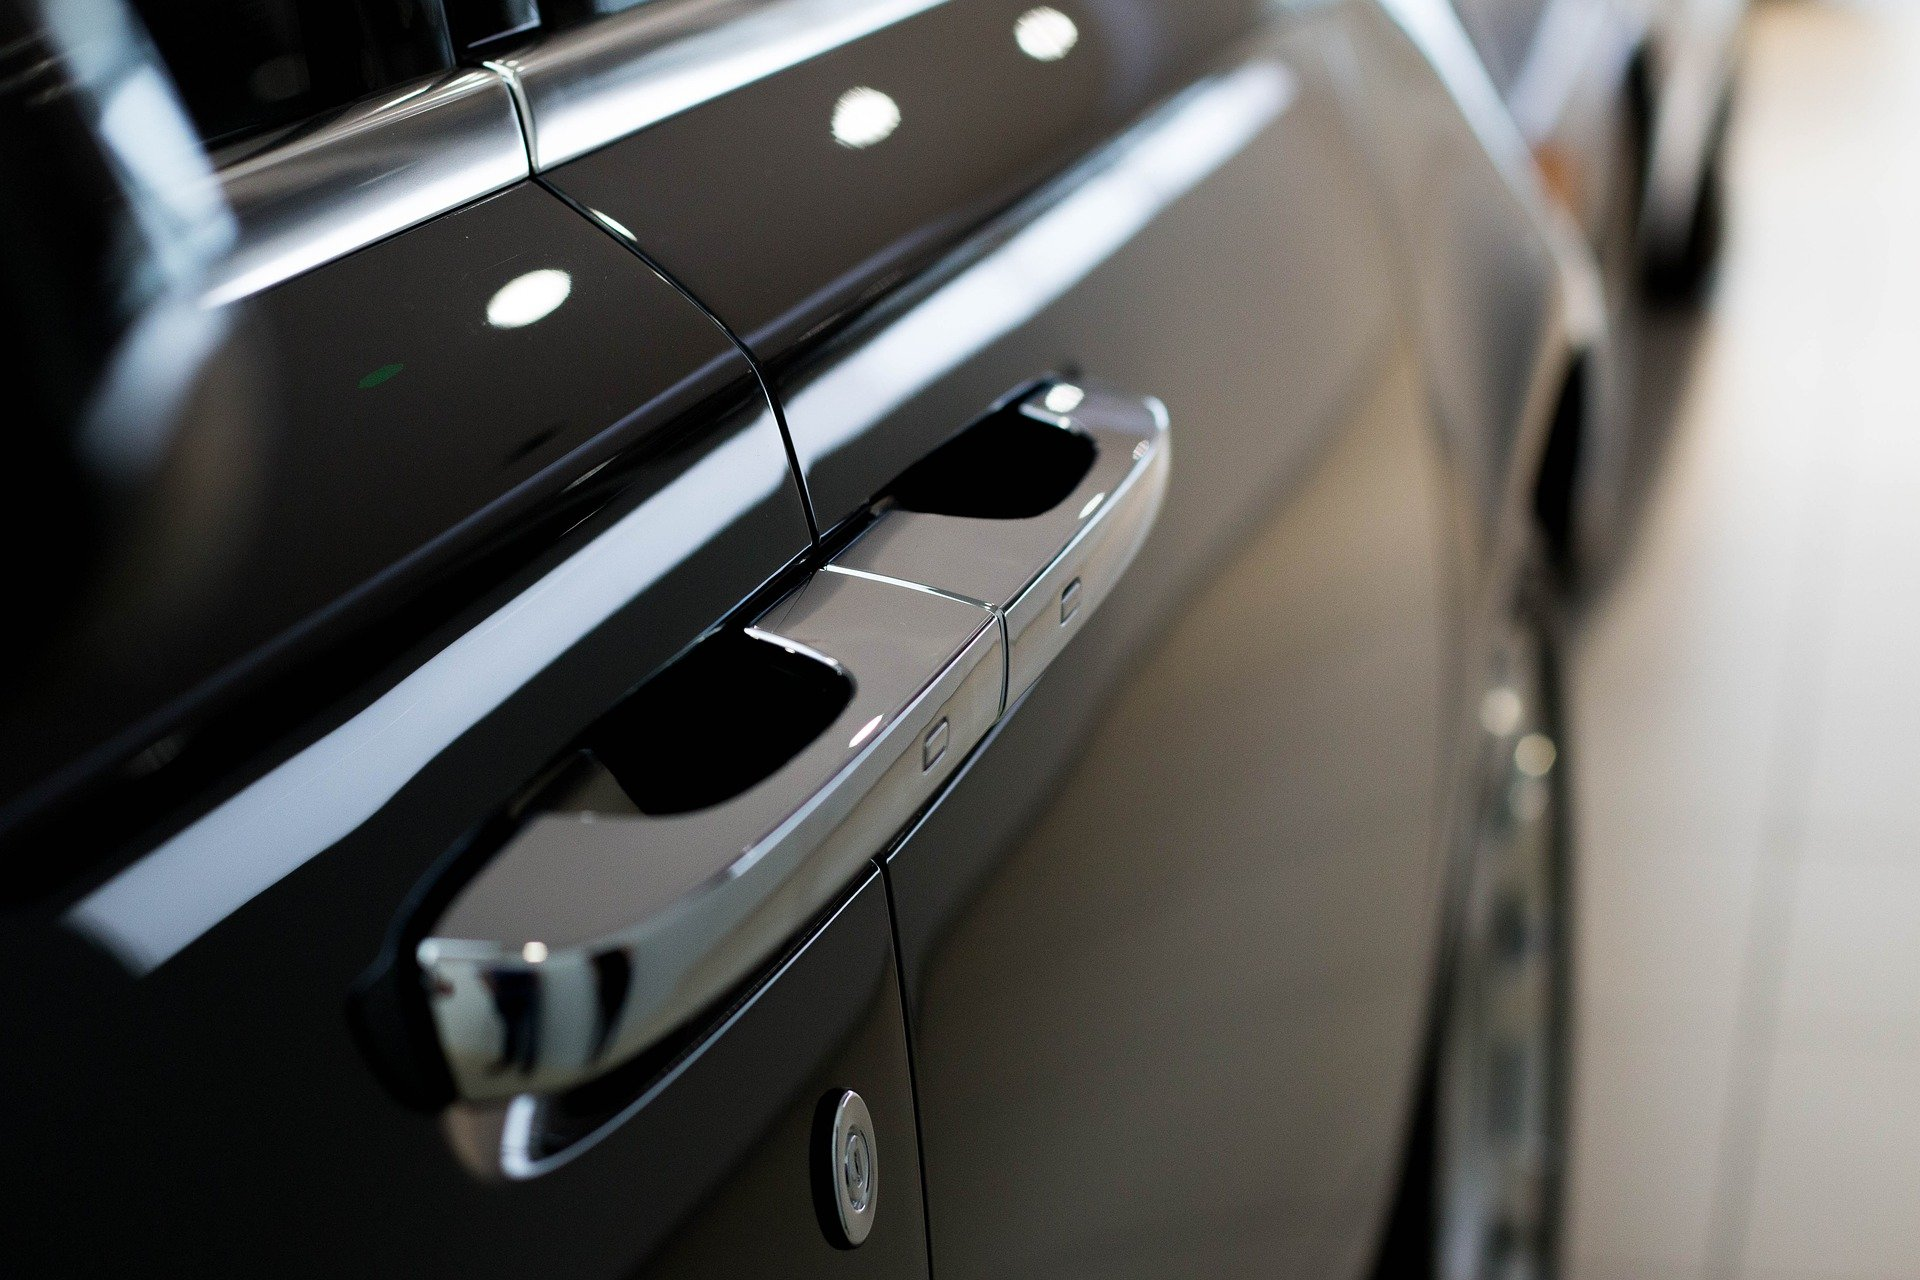 Image of Rolls Royce door handle | Luxian of London executive chauffeur services